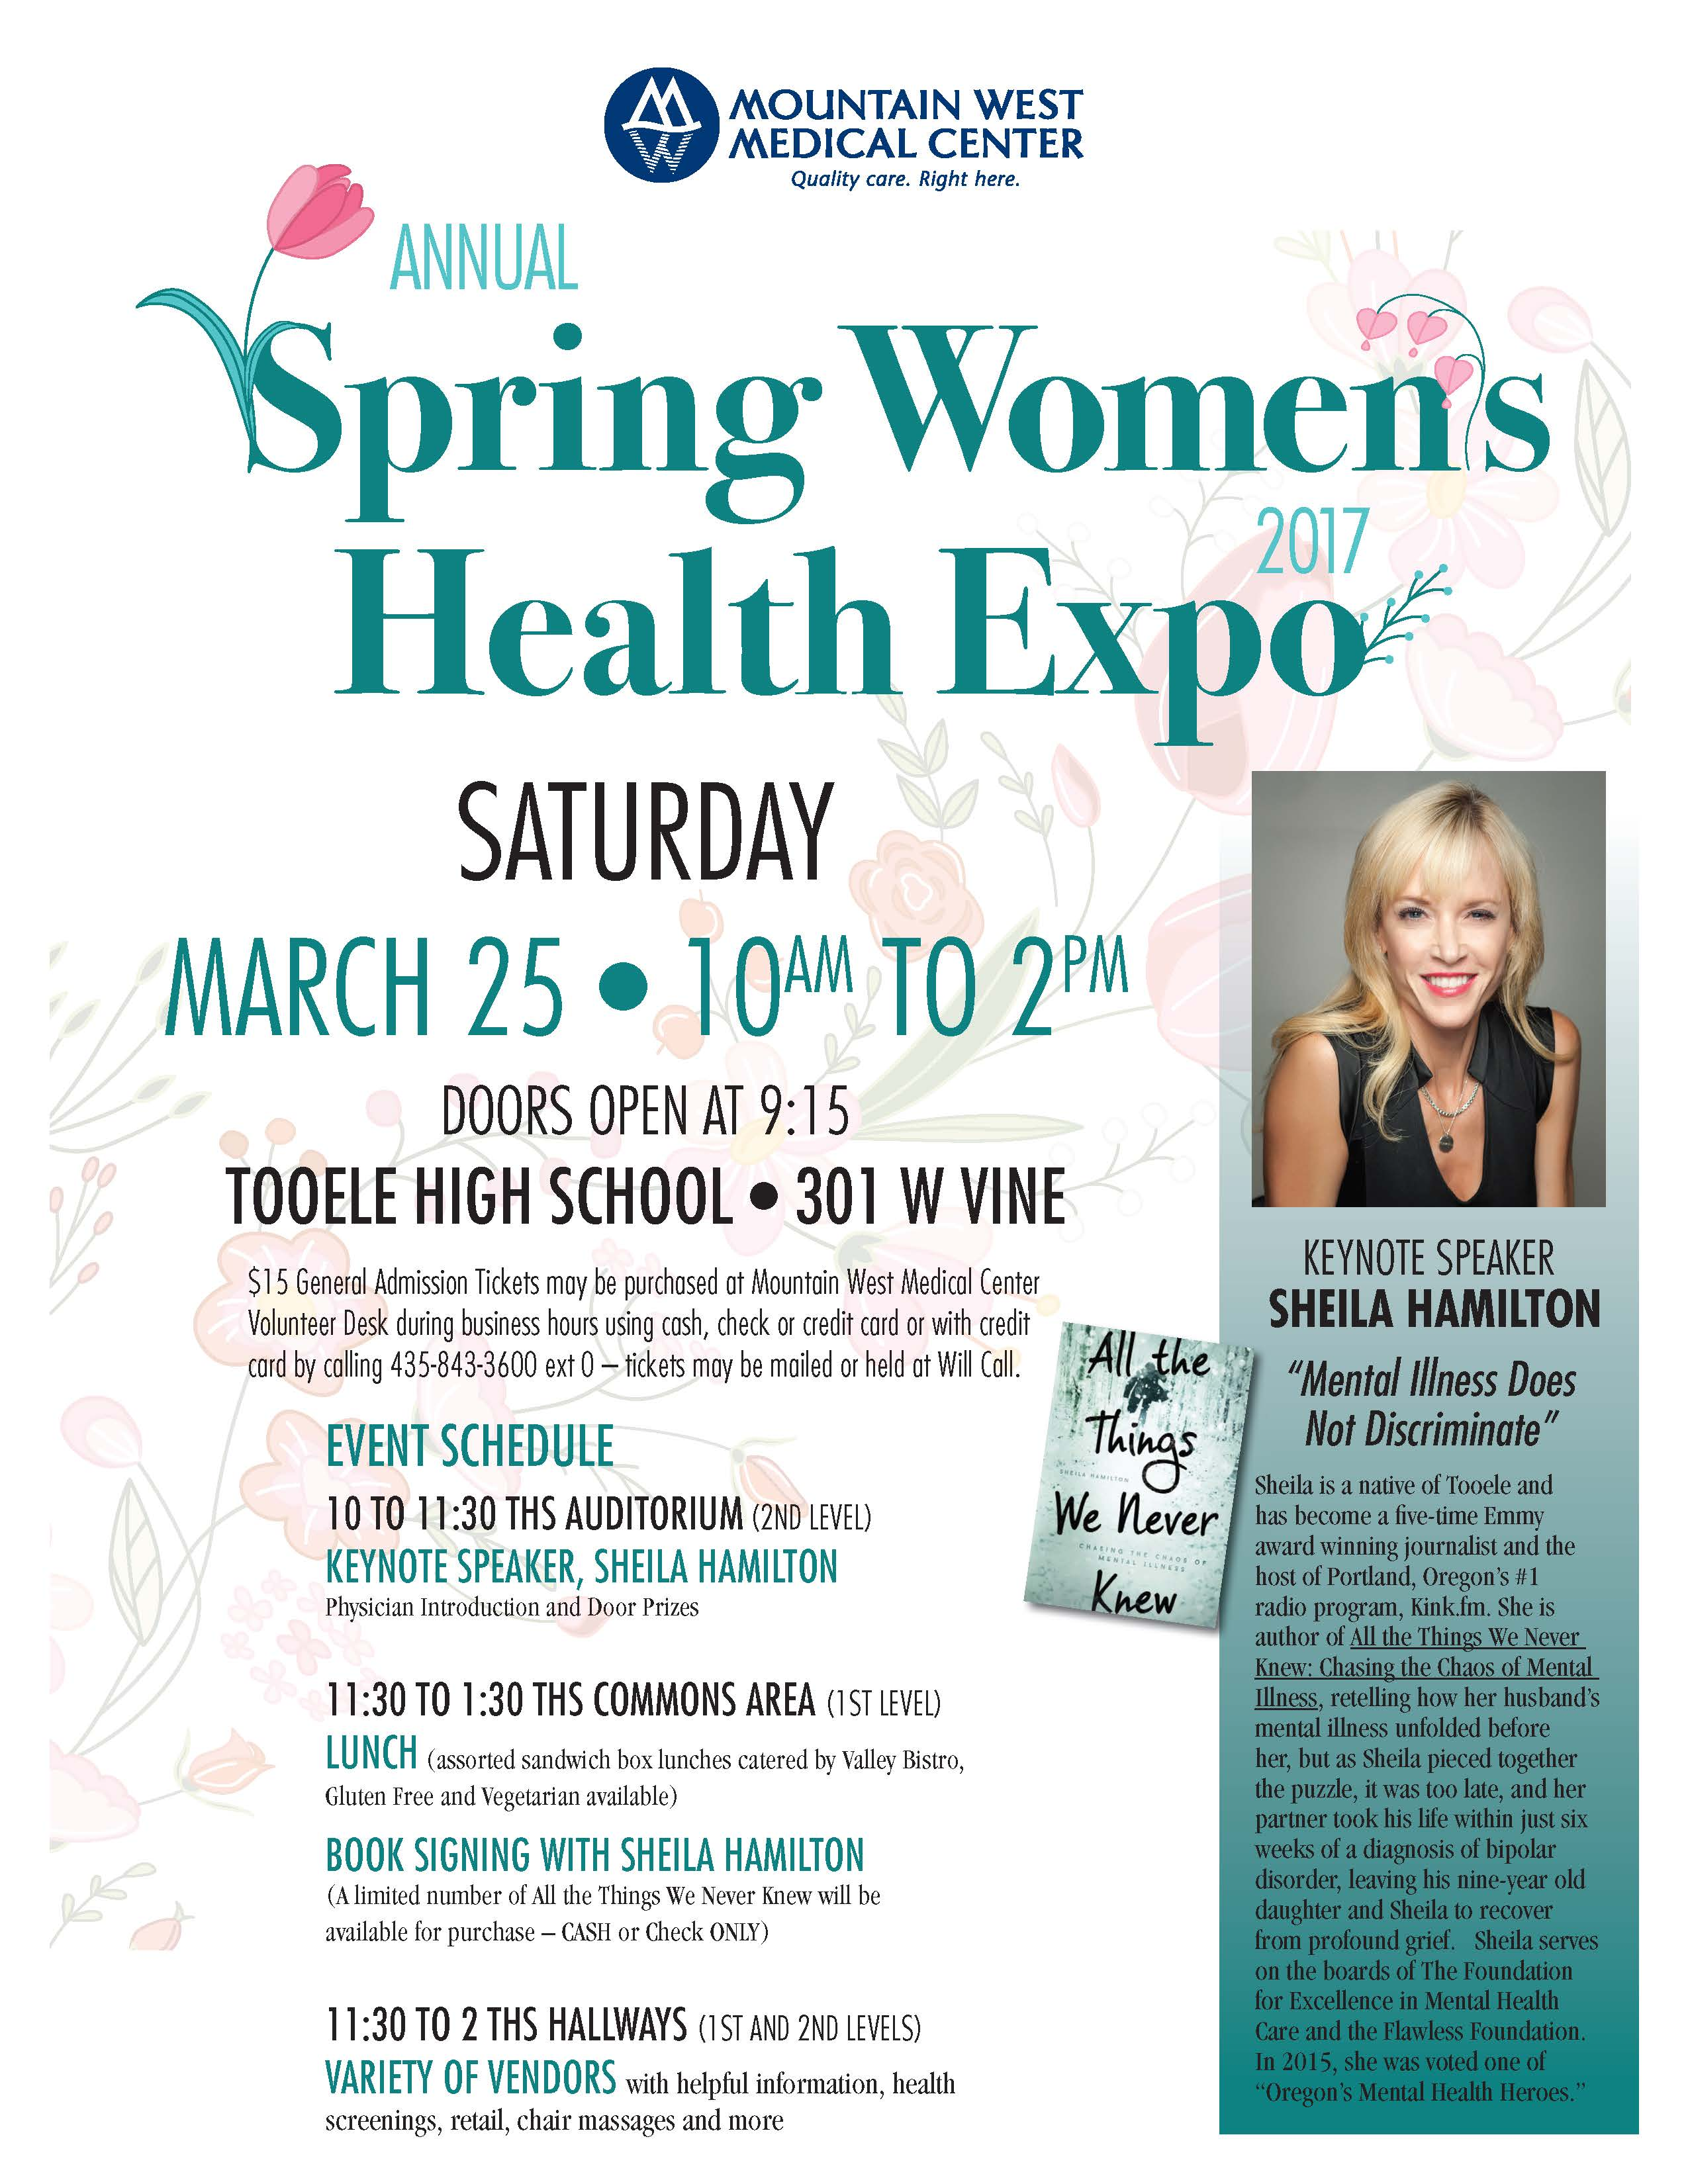 Spring Women's Health Expo 2017 @ Tooele High School | Tooele | Utah | United States